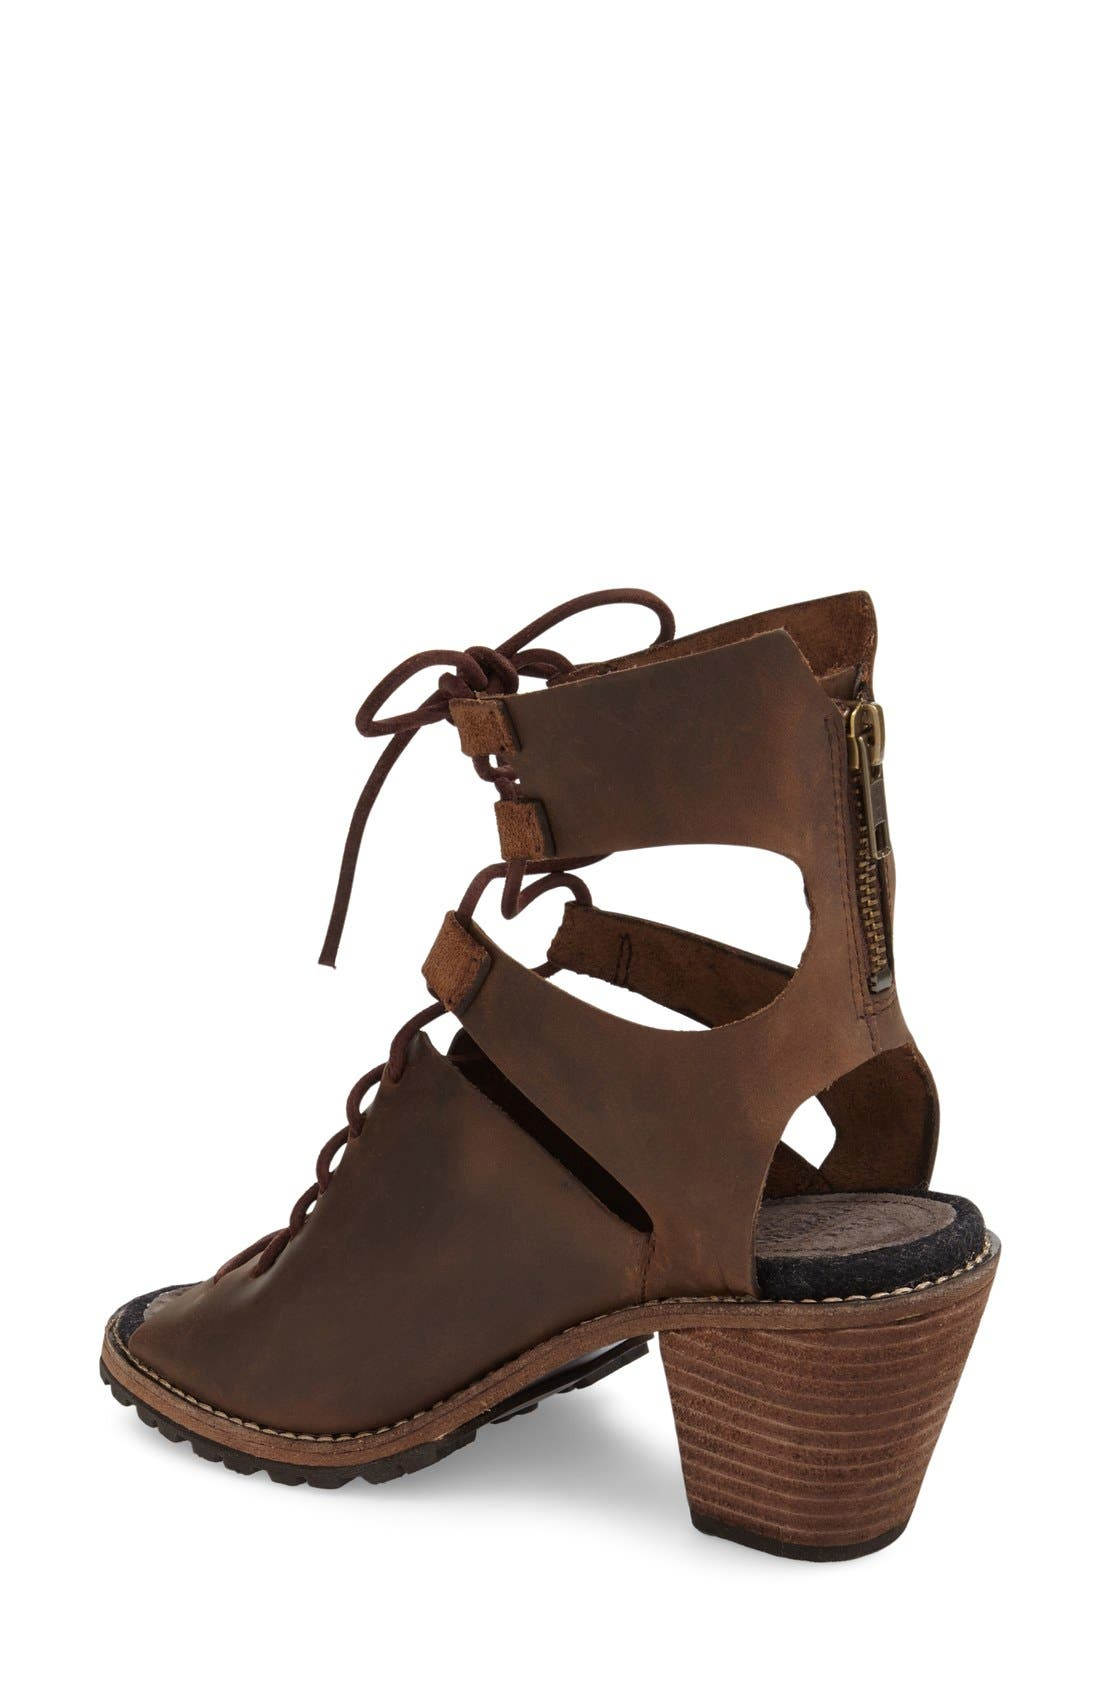 'Mohave Arroyo' Lace-Up Boot,                             Alternate thumbnail 2, color,                             Bitter Chocolate Leather